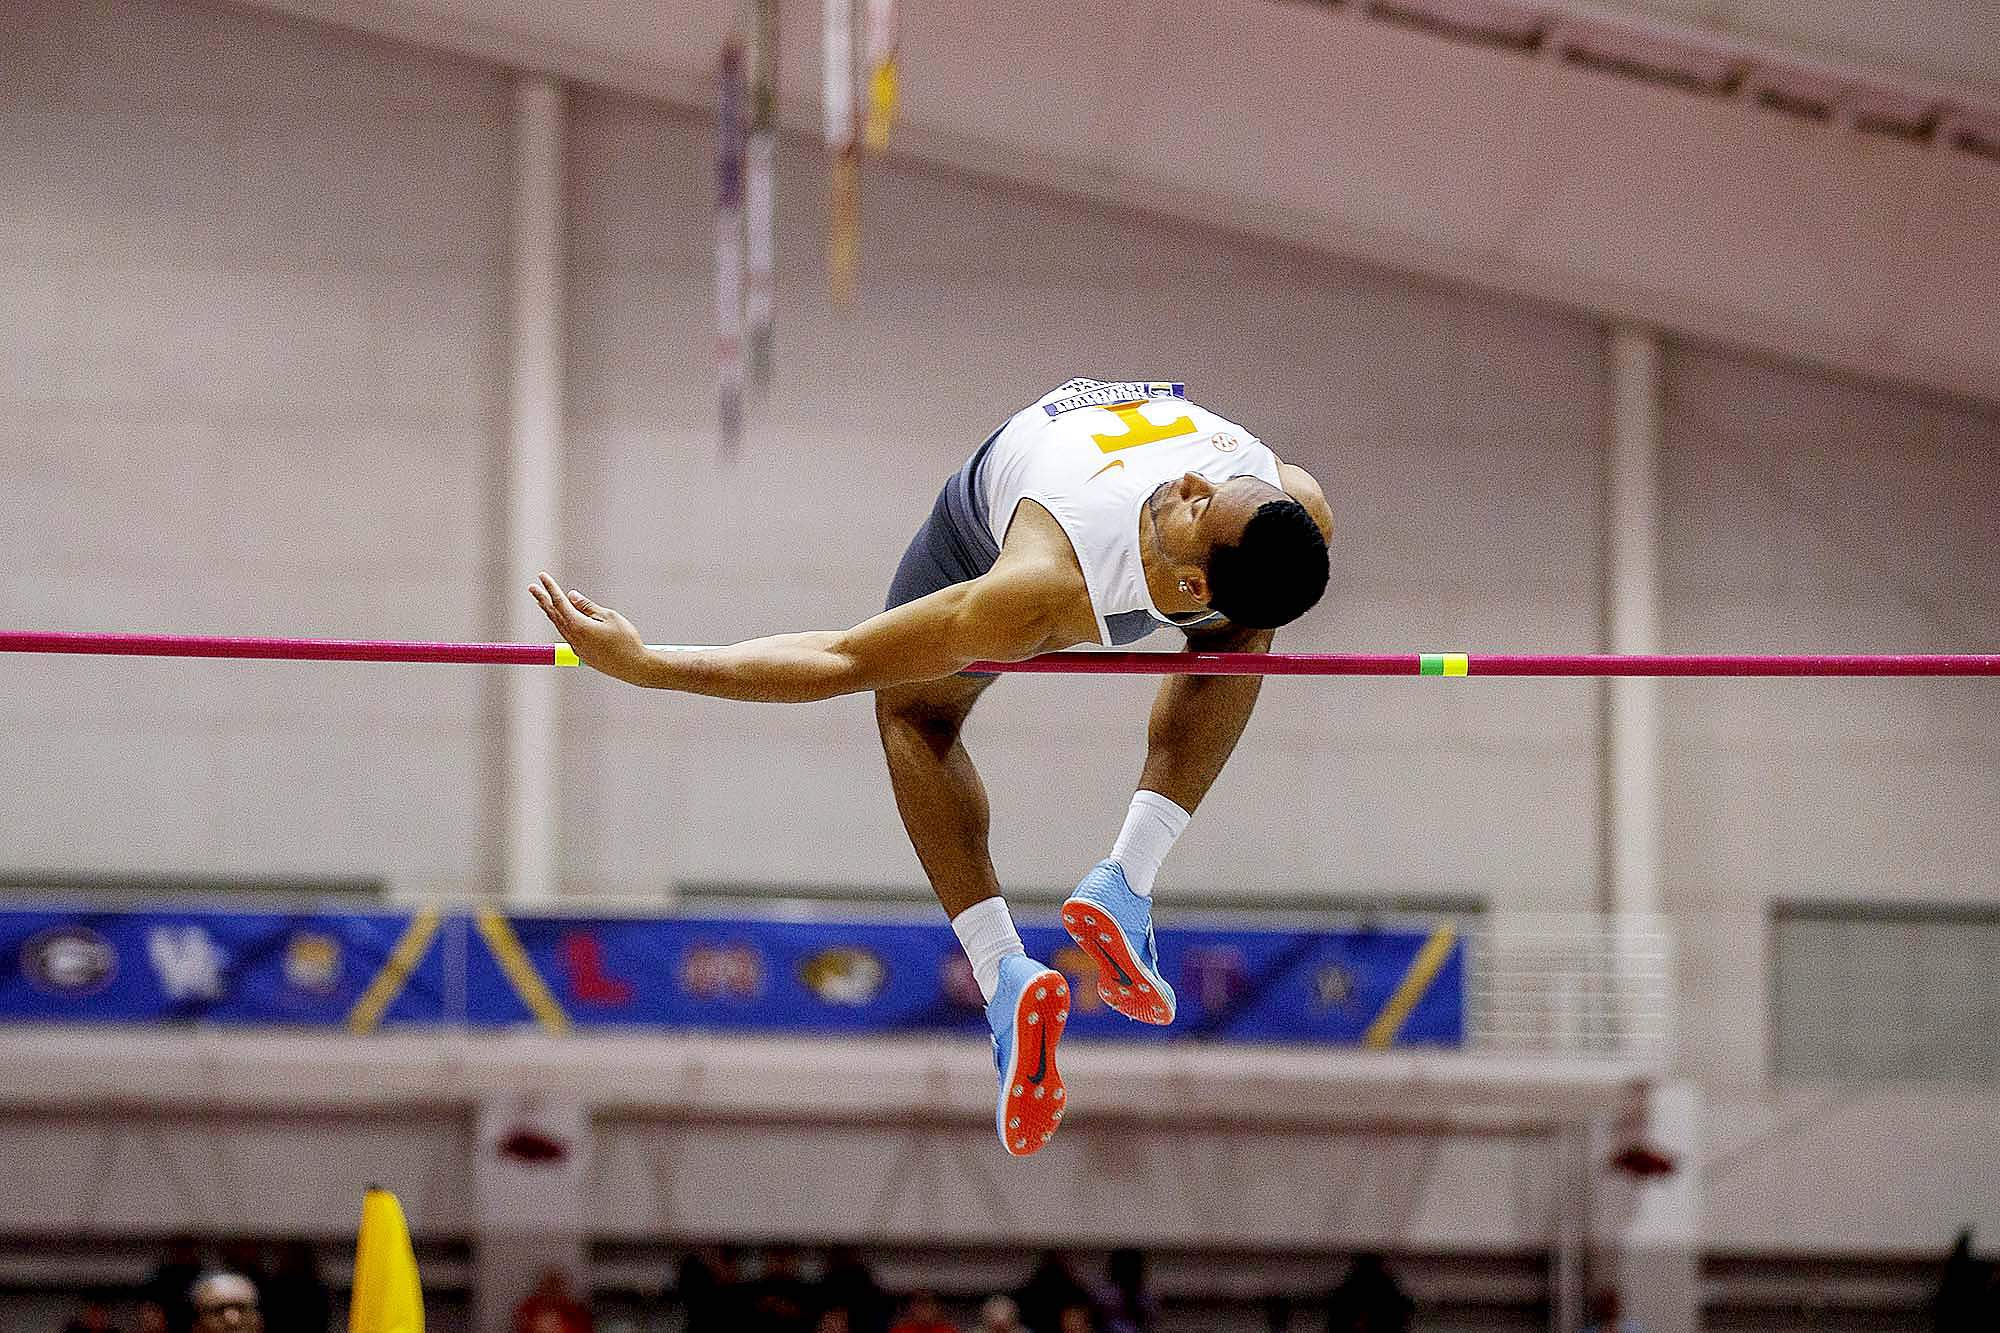 Marion native Daryl Sullivan took second place over the weekend at the 2019 NCAA Indoor National Championships with a second place finish in the high jump.